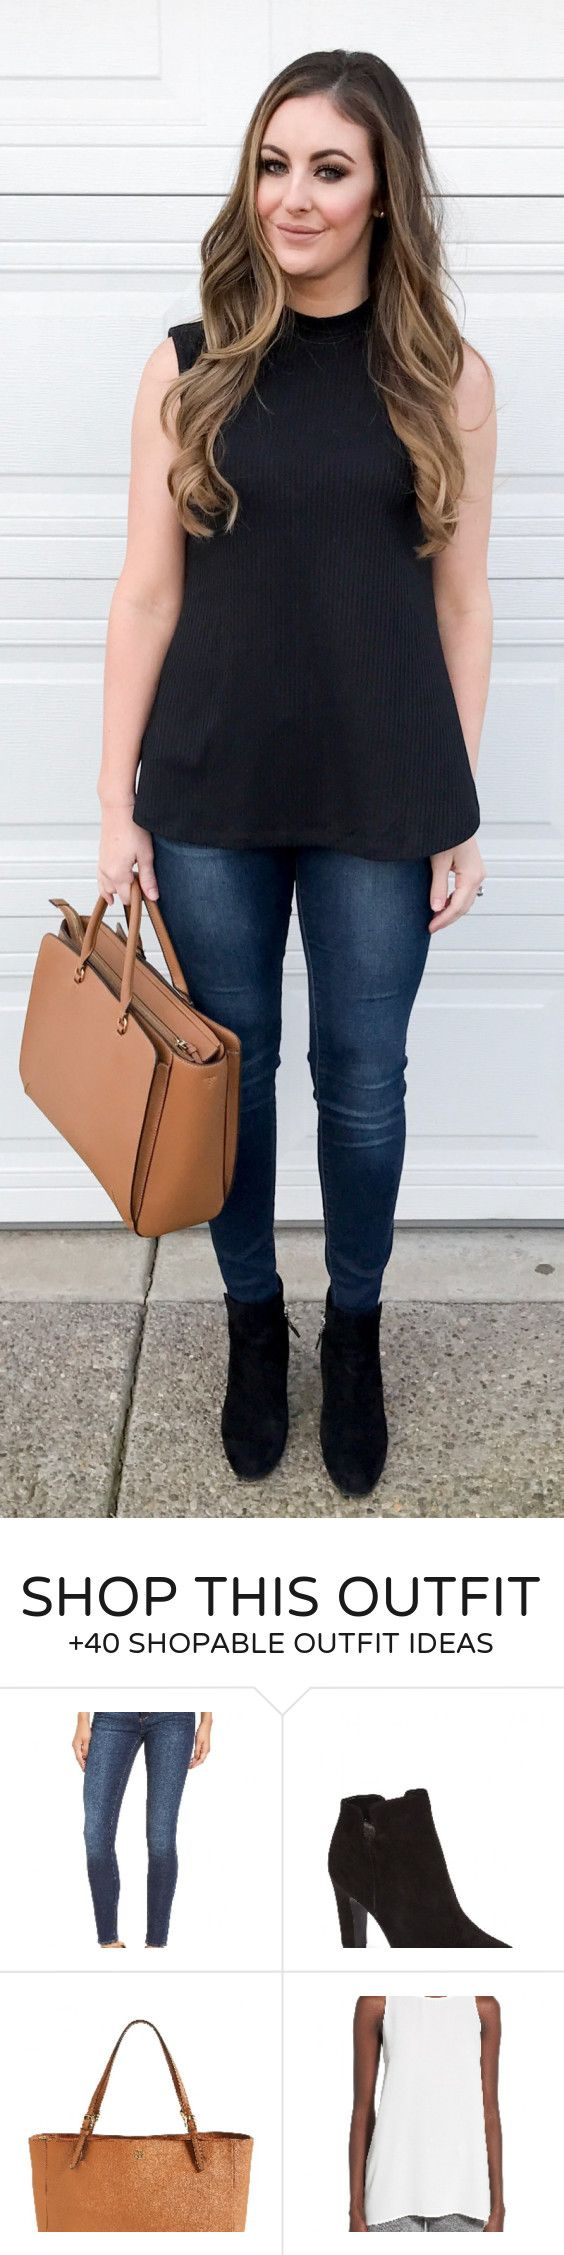 #spring #fashion Black Top & Brown Leather Tote Bag & Black Booties